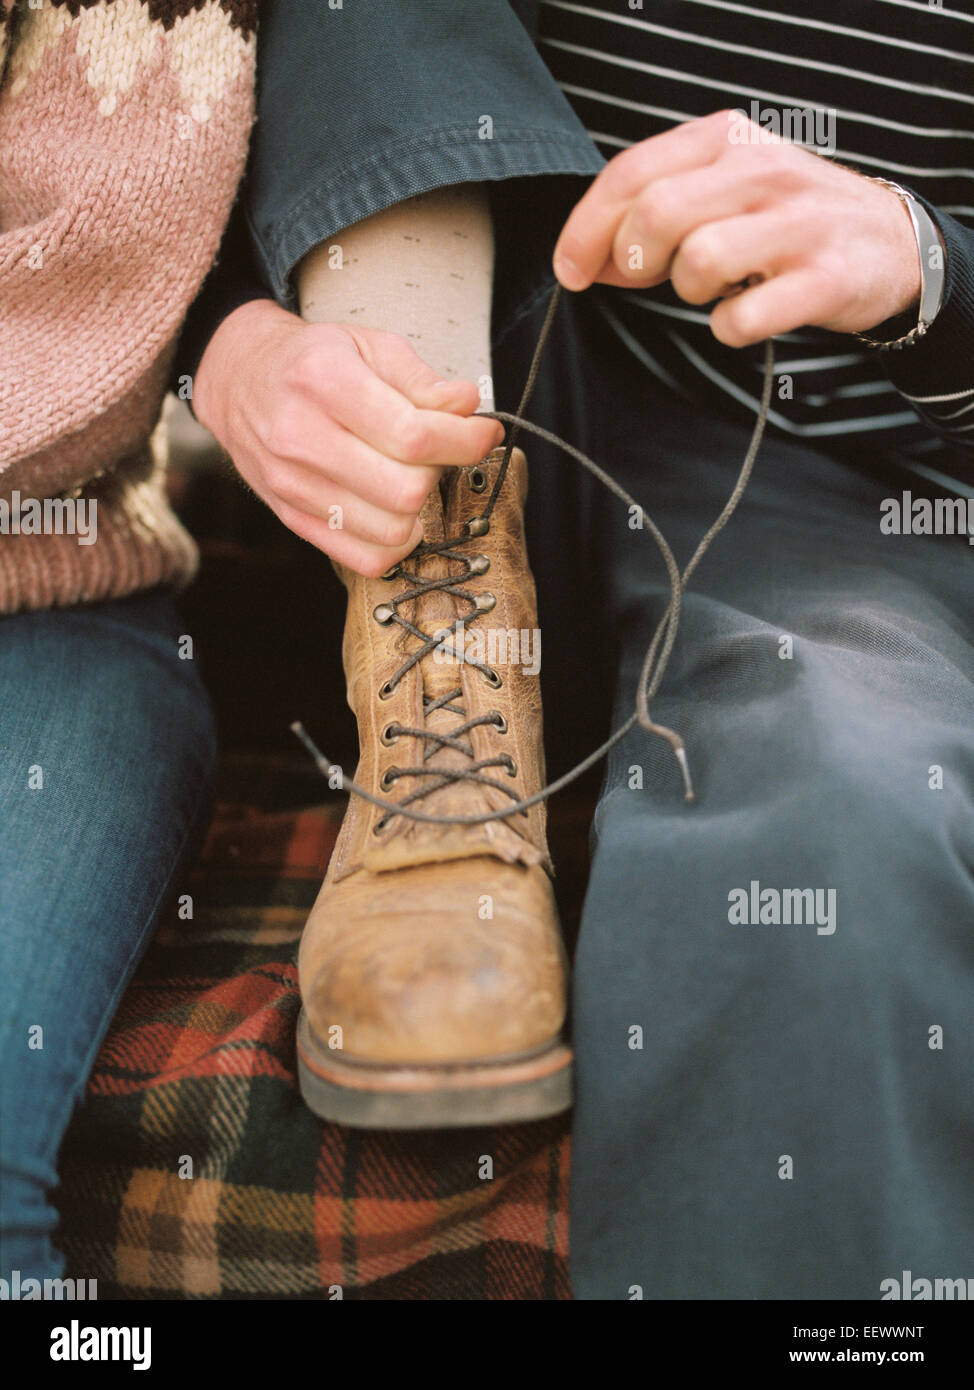 Close up of a man tying his boot laces. - Stock Image